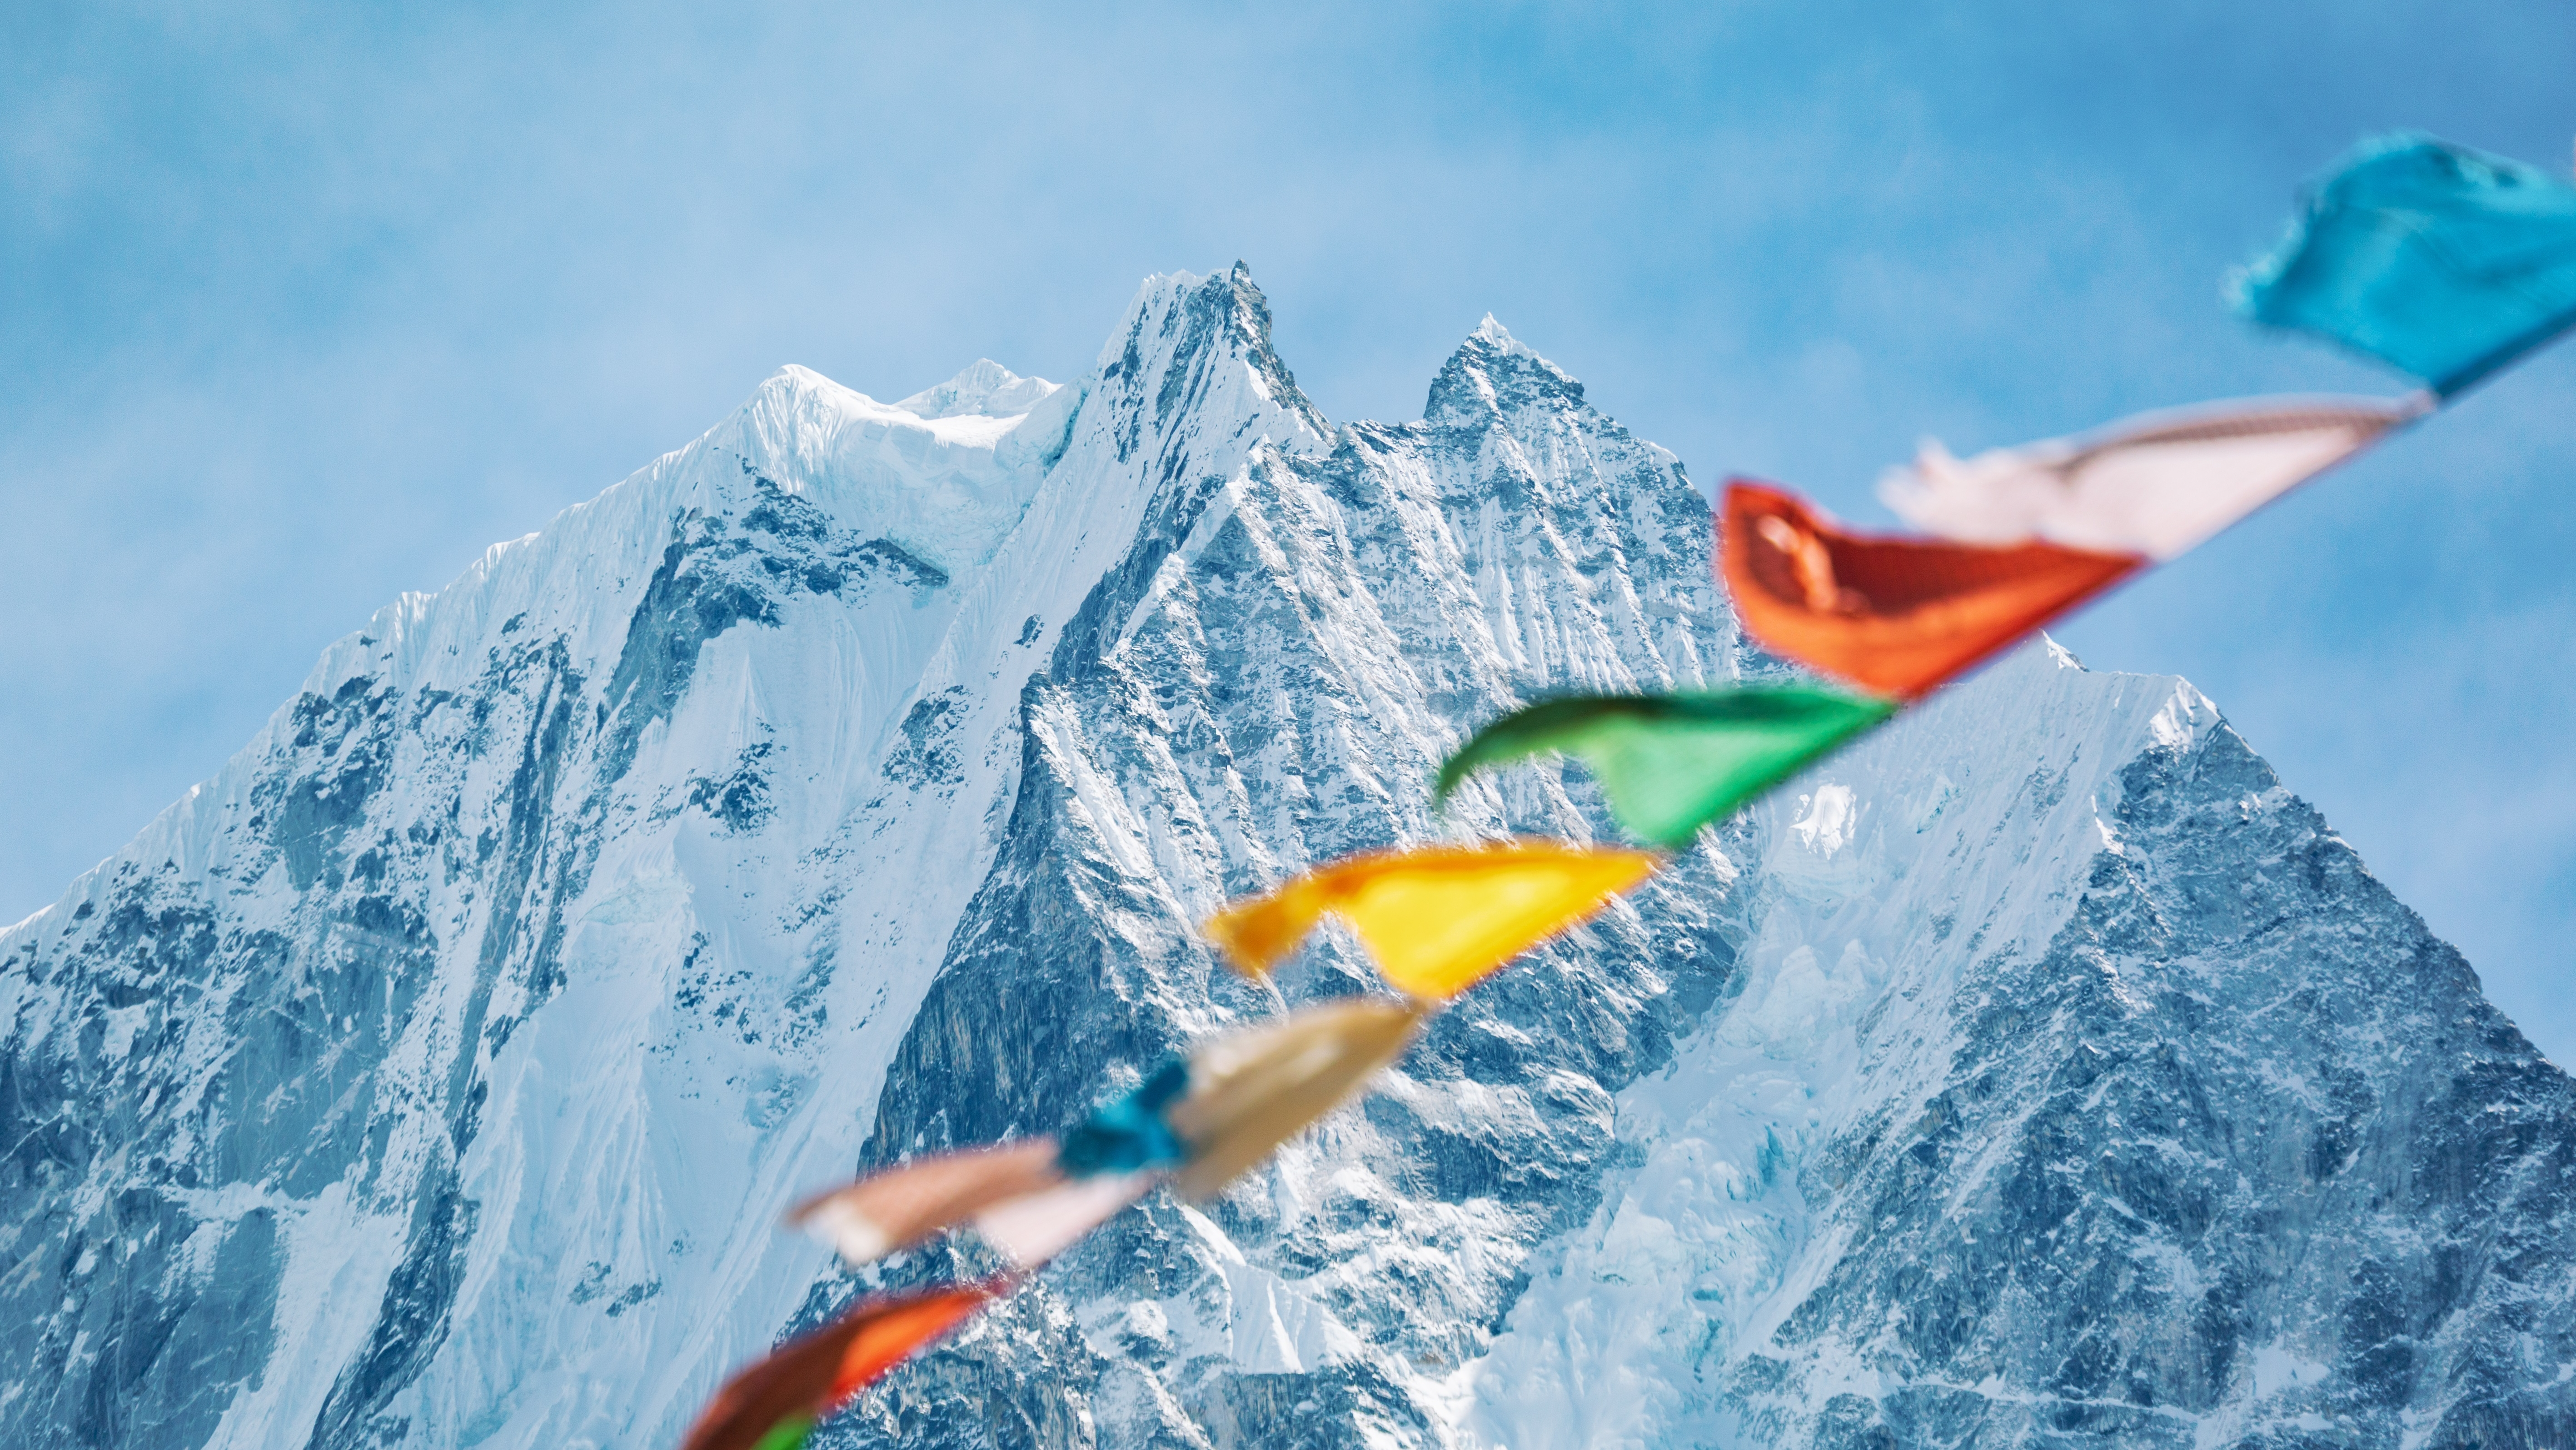 'I started comping on the MSE Forum... and three months later won a trip to Everest'